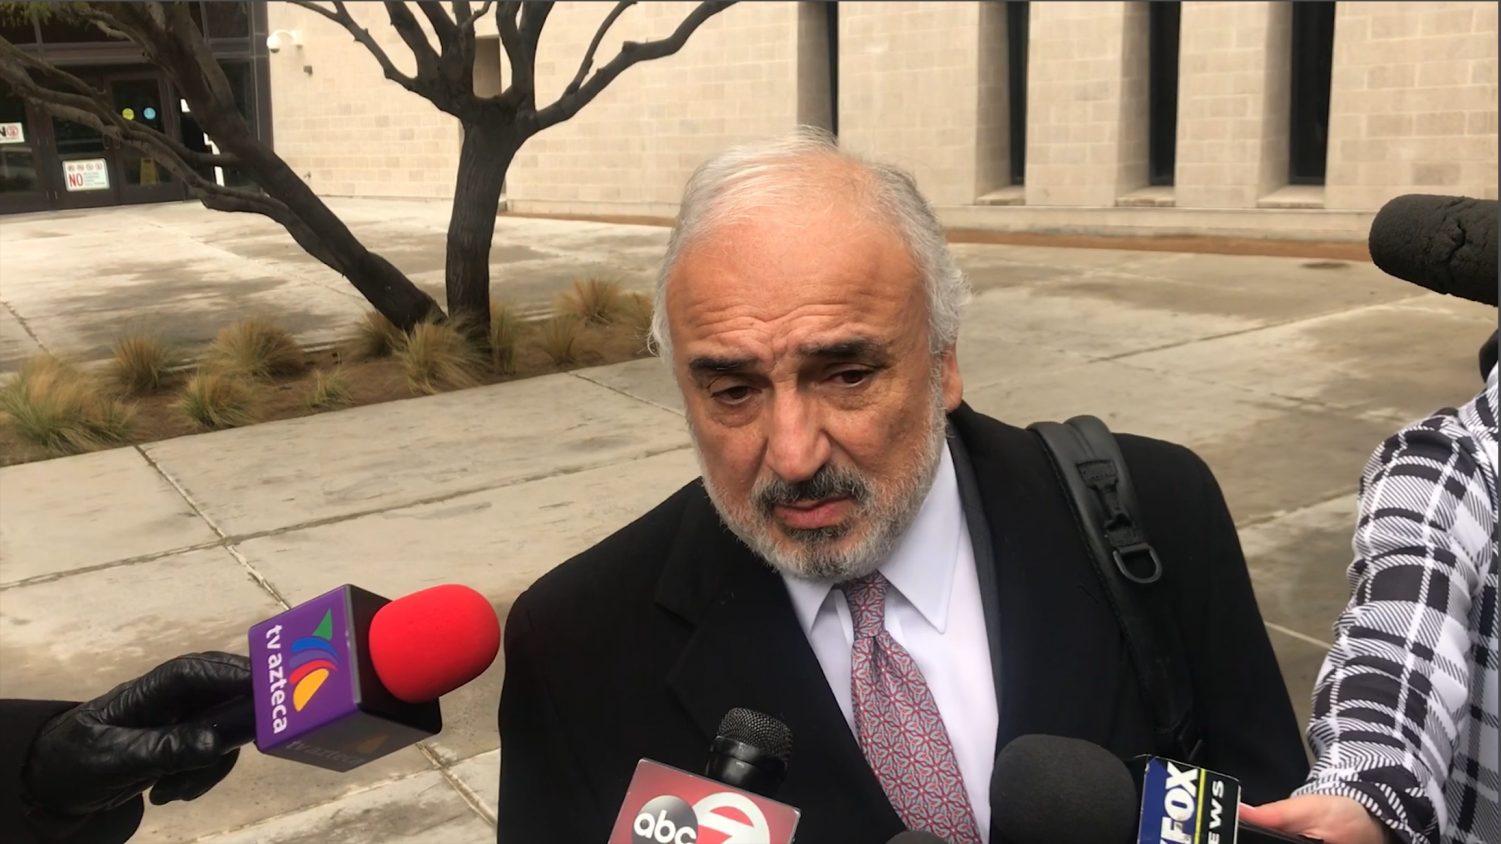 El Paso-based defense attorney Joe Spencer speaks with reporters outside U.S. District Court following a hearing for Patrick Wood Crusius, who is accused of killing 22 people and injuring 23 more in a mass shooting at an El Paso Walmart on Aug. 3, 2019. The 90-count indictment charges Crusius with hate crimes.